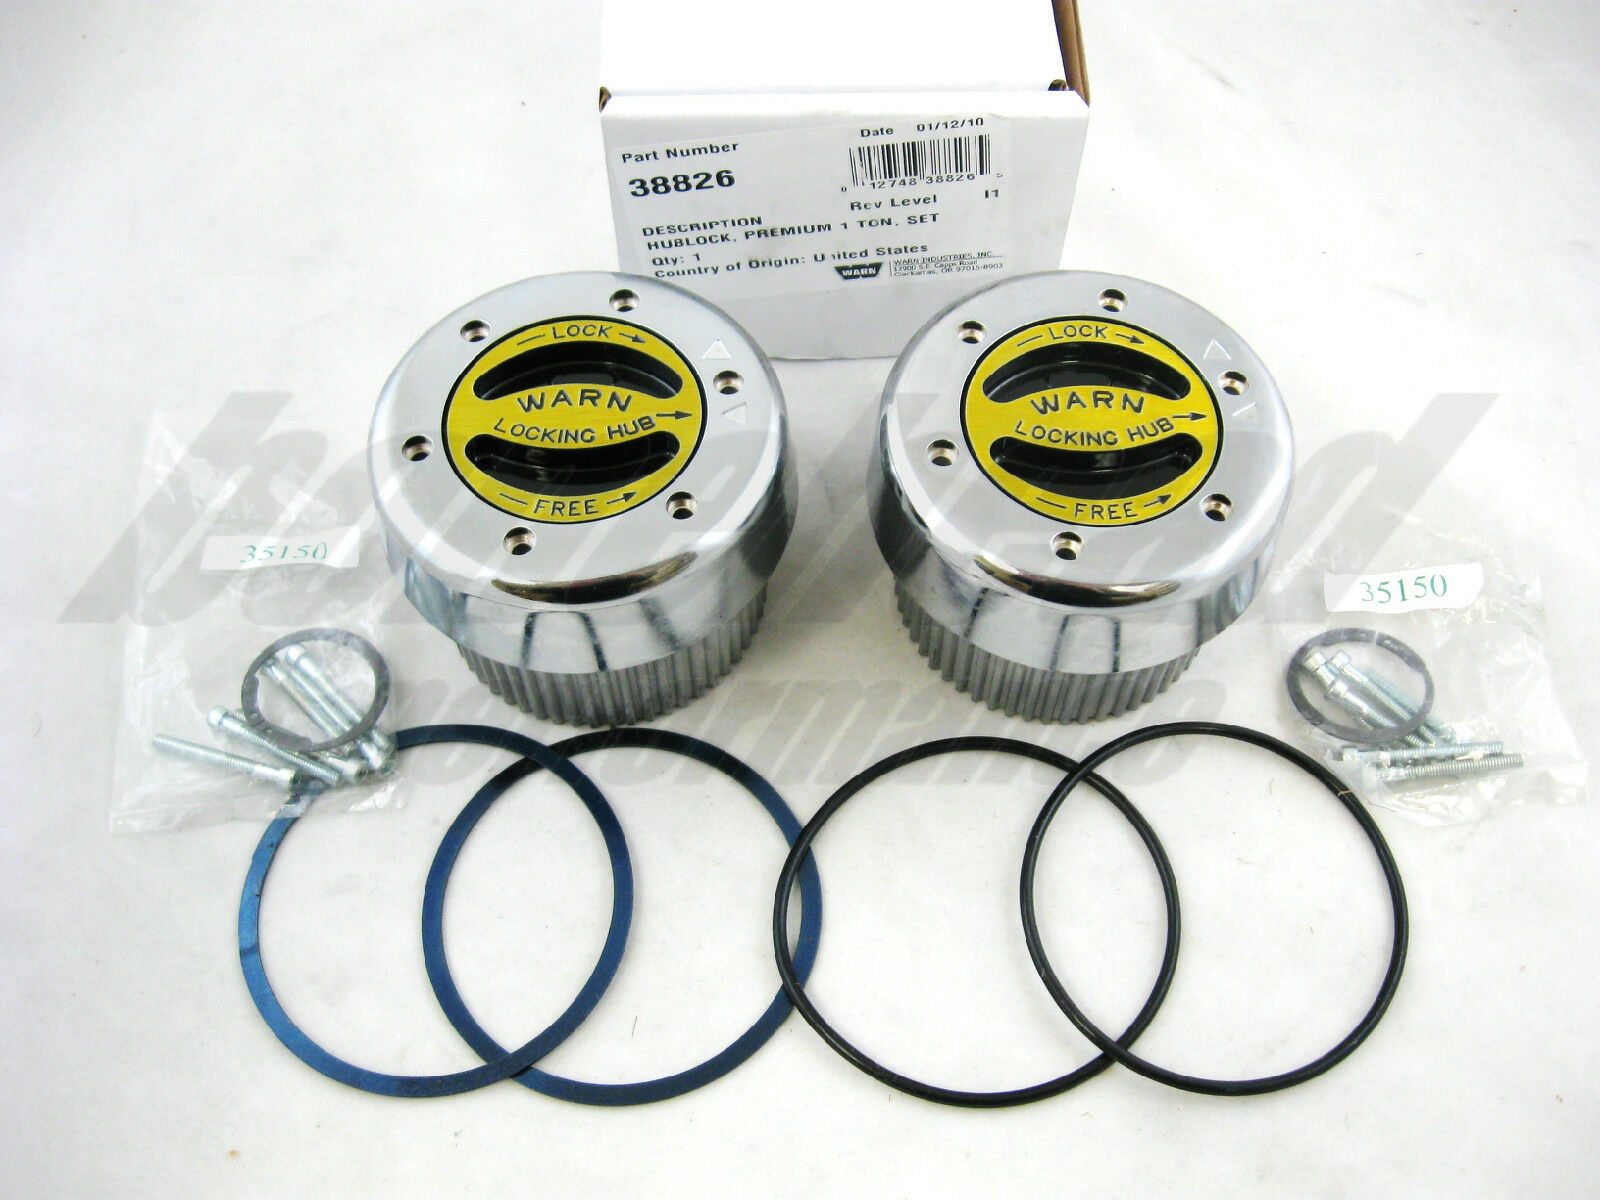 warn parts accessories warn 38826 premium 4wd manual locking hubs 1999 2004 ford super duty f 250